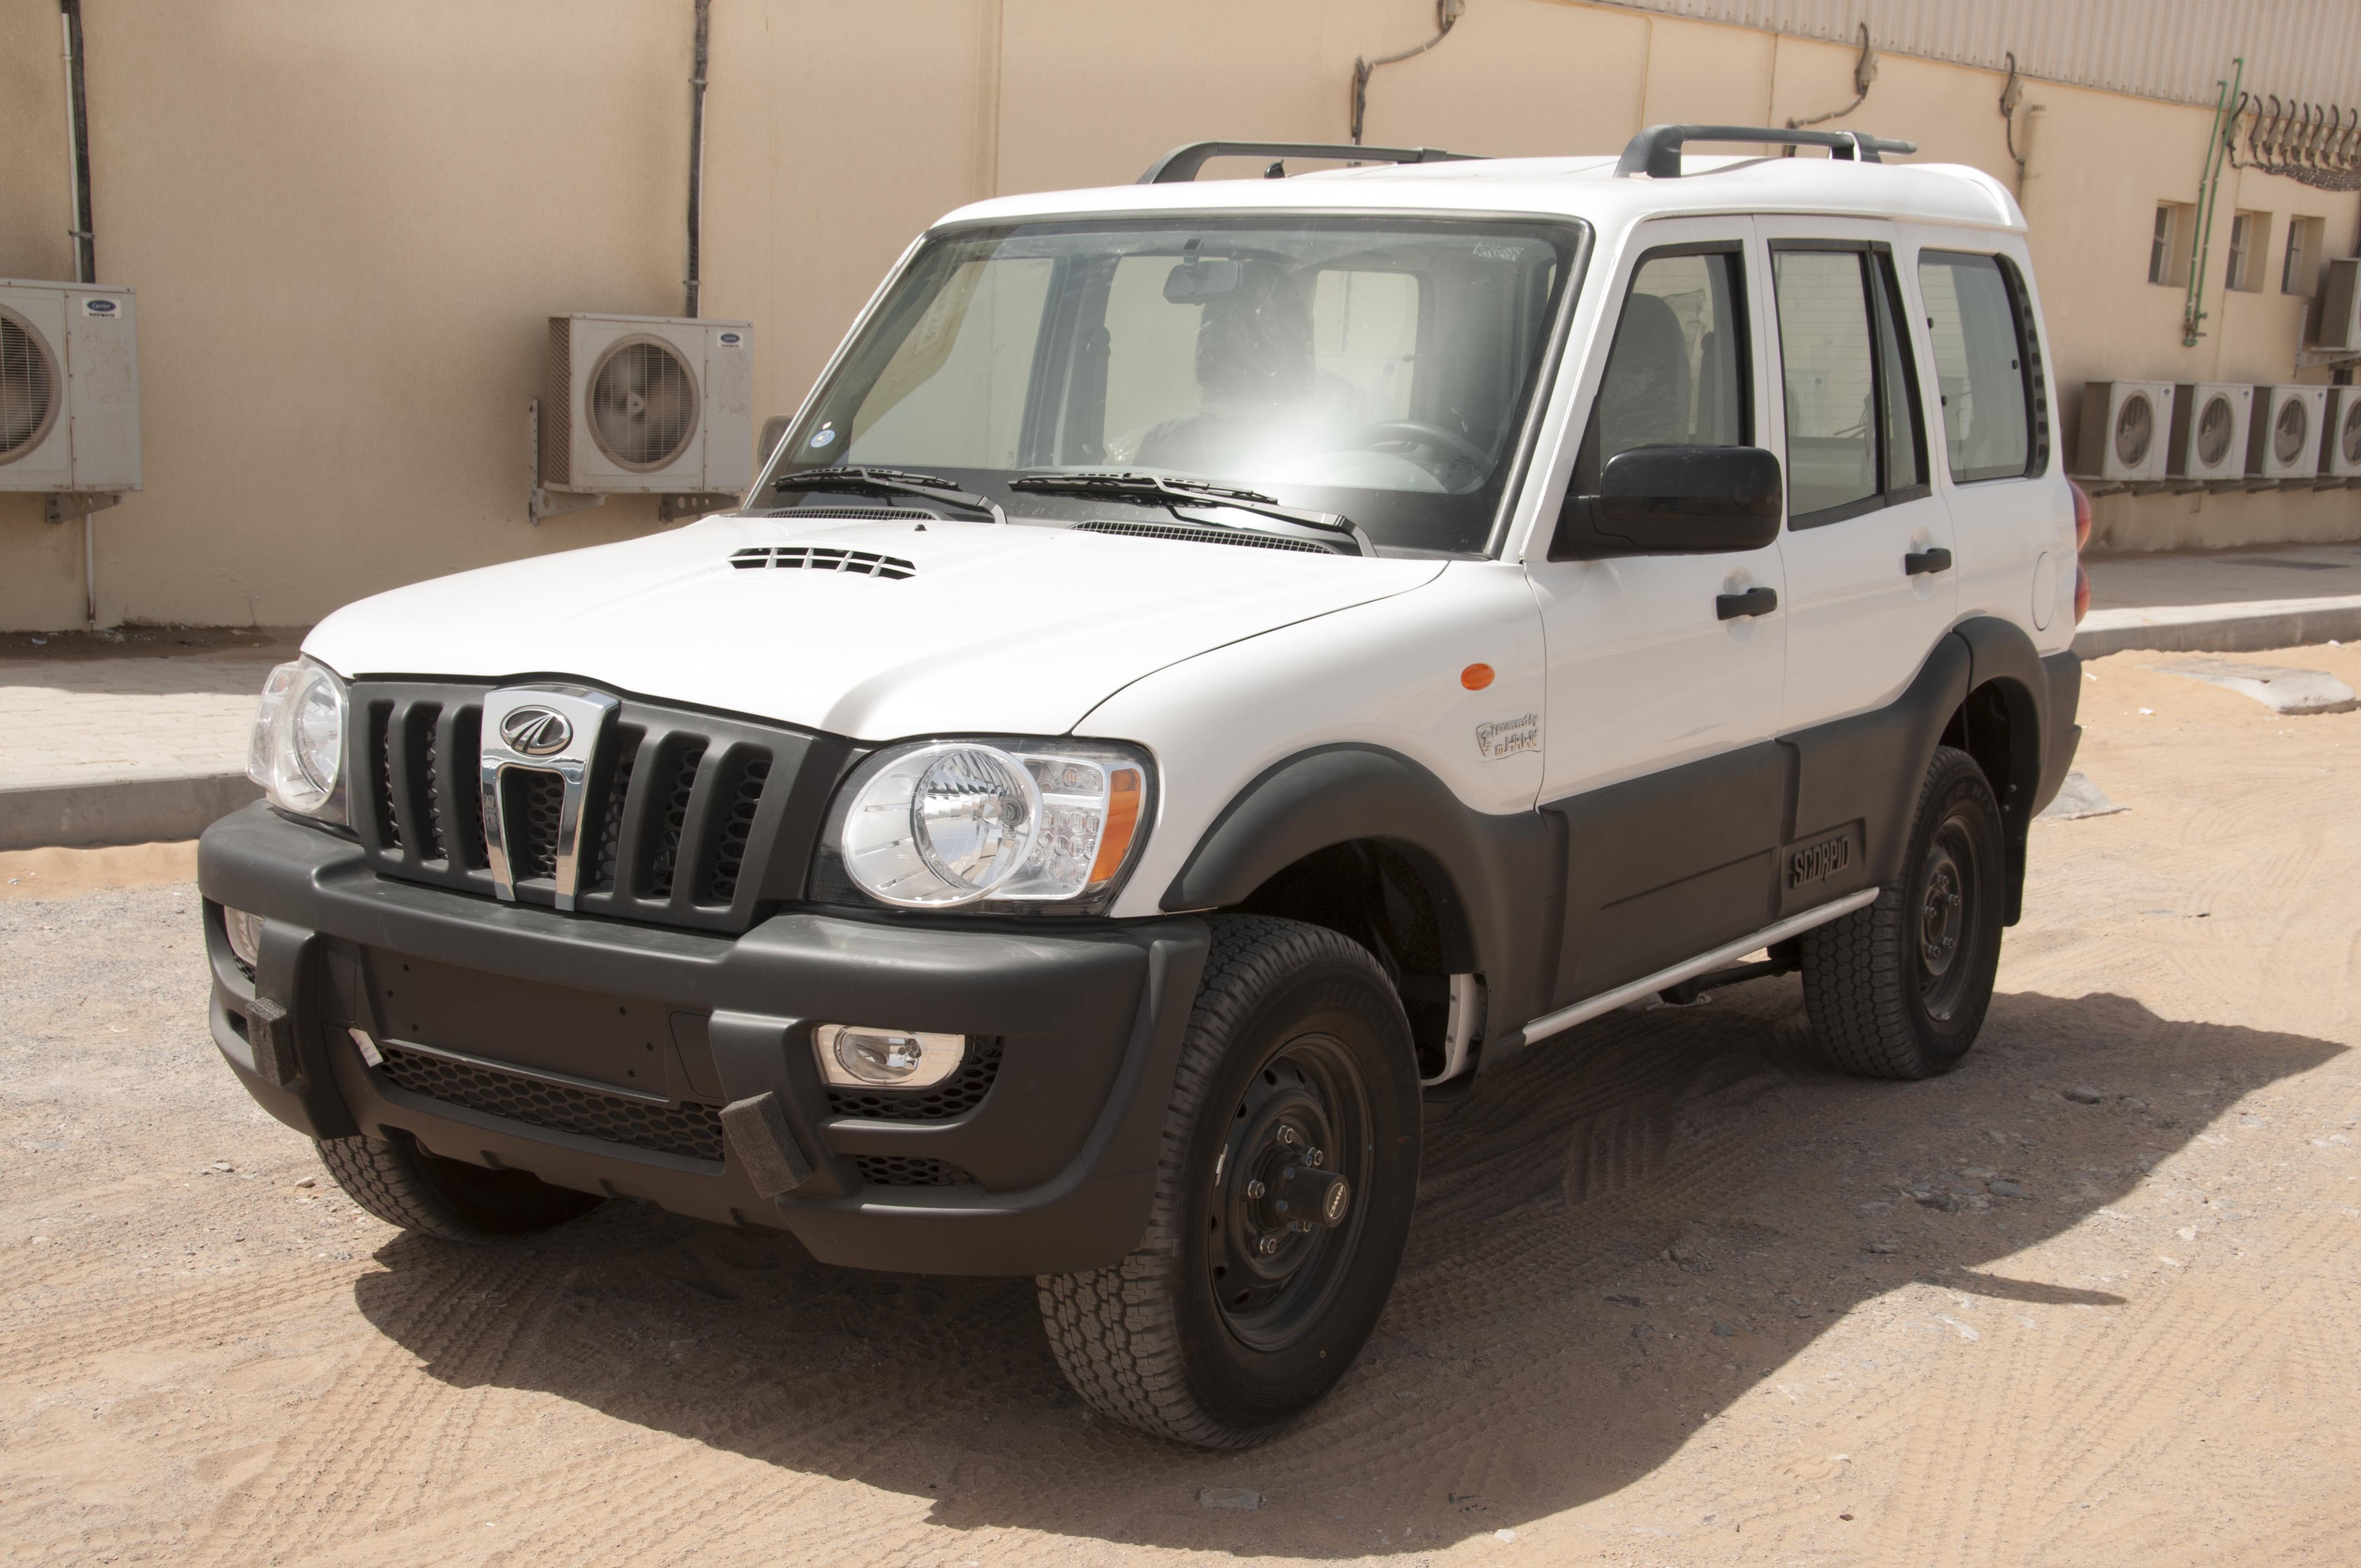 The Armoured Mahindra Scorpio SUV